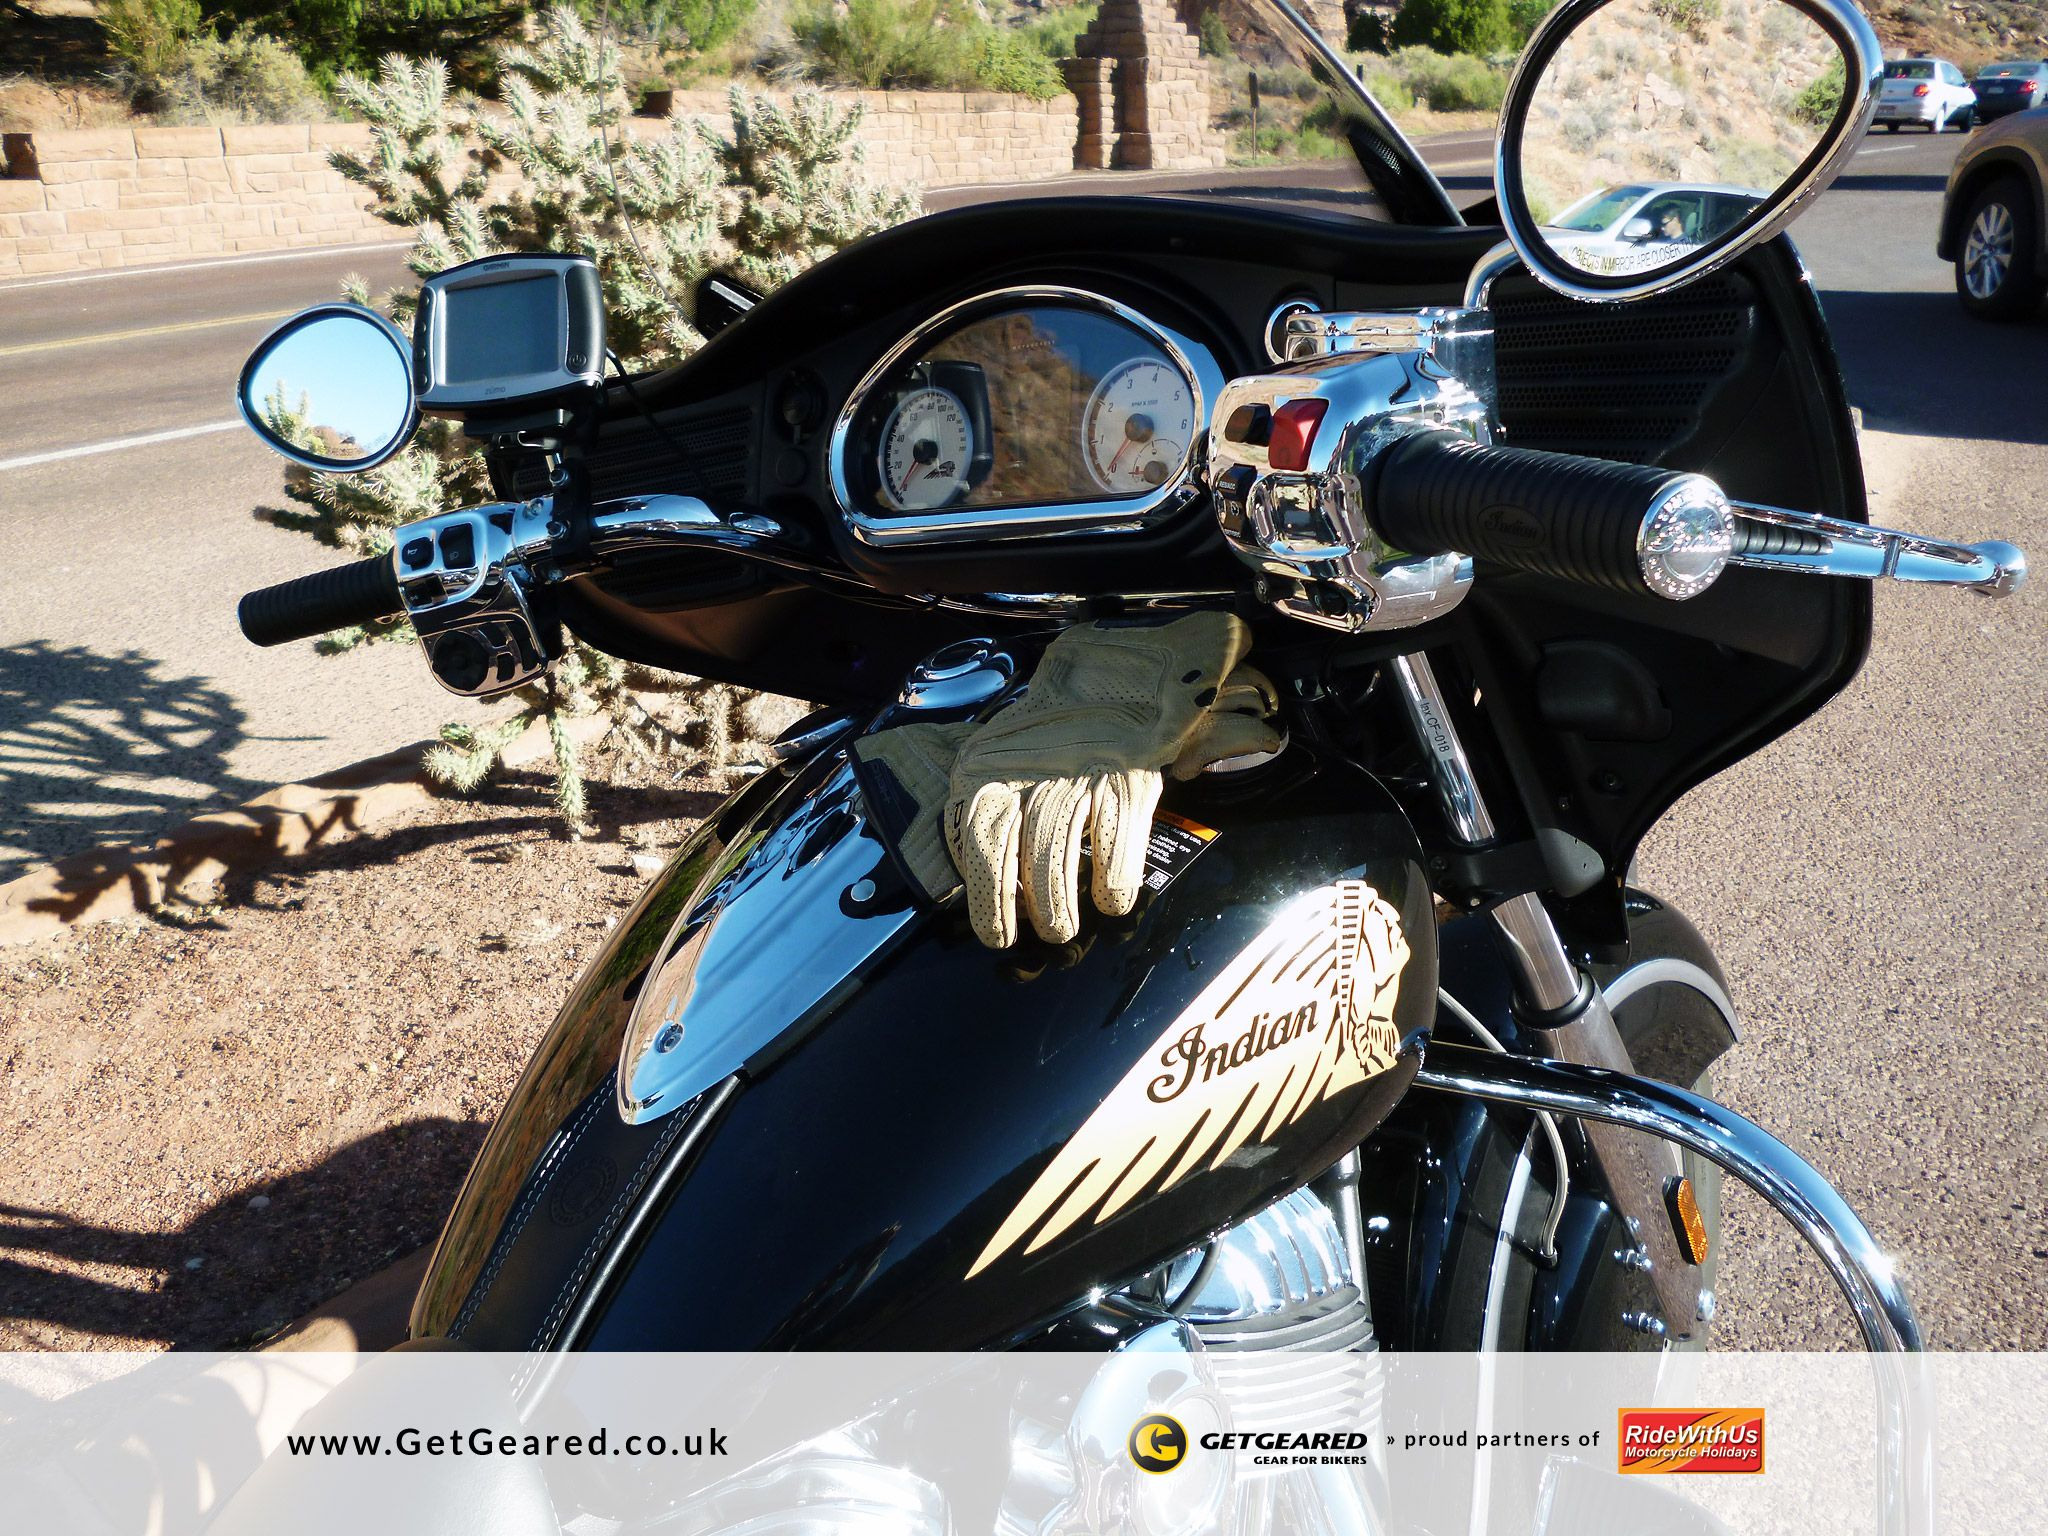 Motorcycle tours - USA 133 Motorbike touring accessories for RideWithUsTours supplied by GetGeared http://www.getgeared.co.uk/?leadsource=ggs1410&utm_campaign=ggs1410&utm_topic=rwut